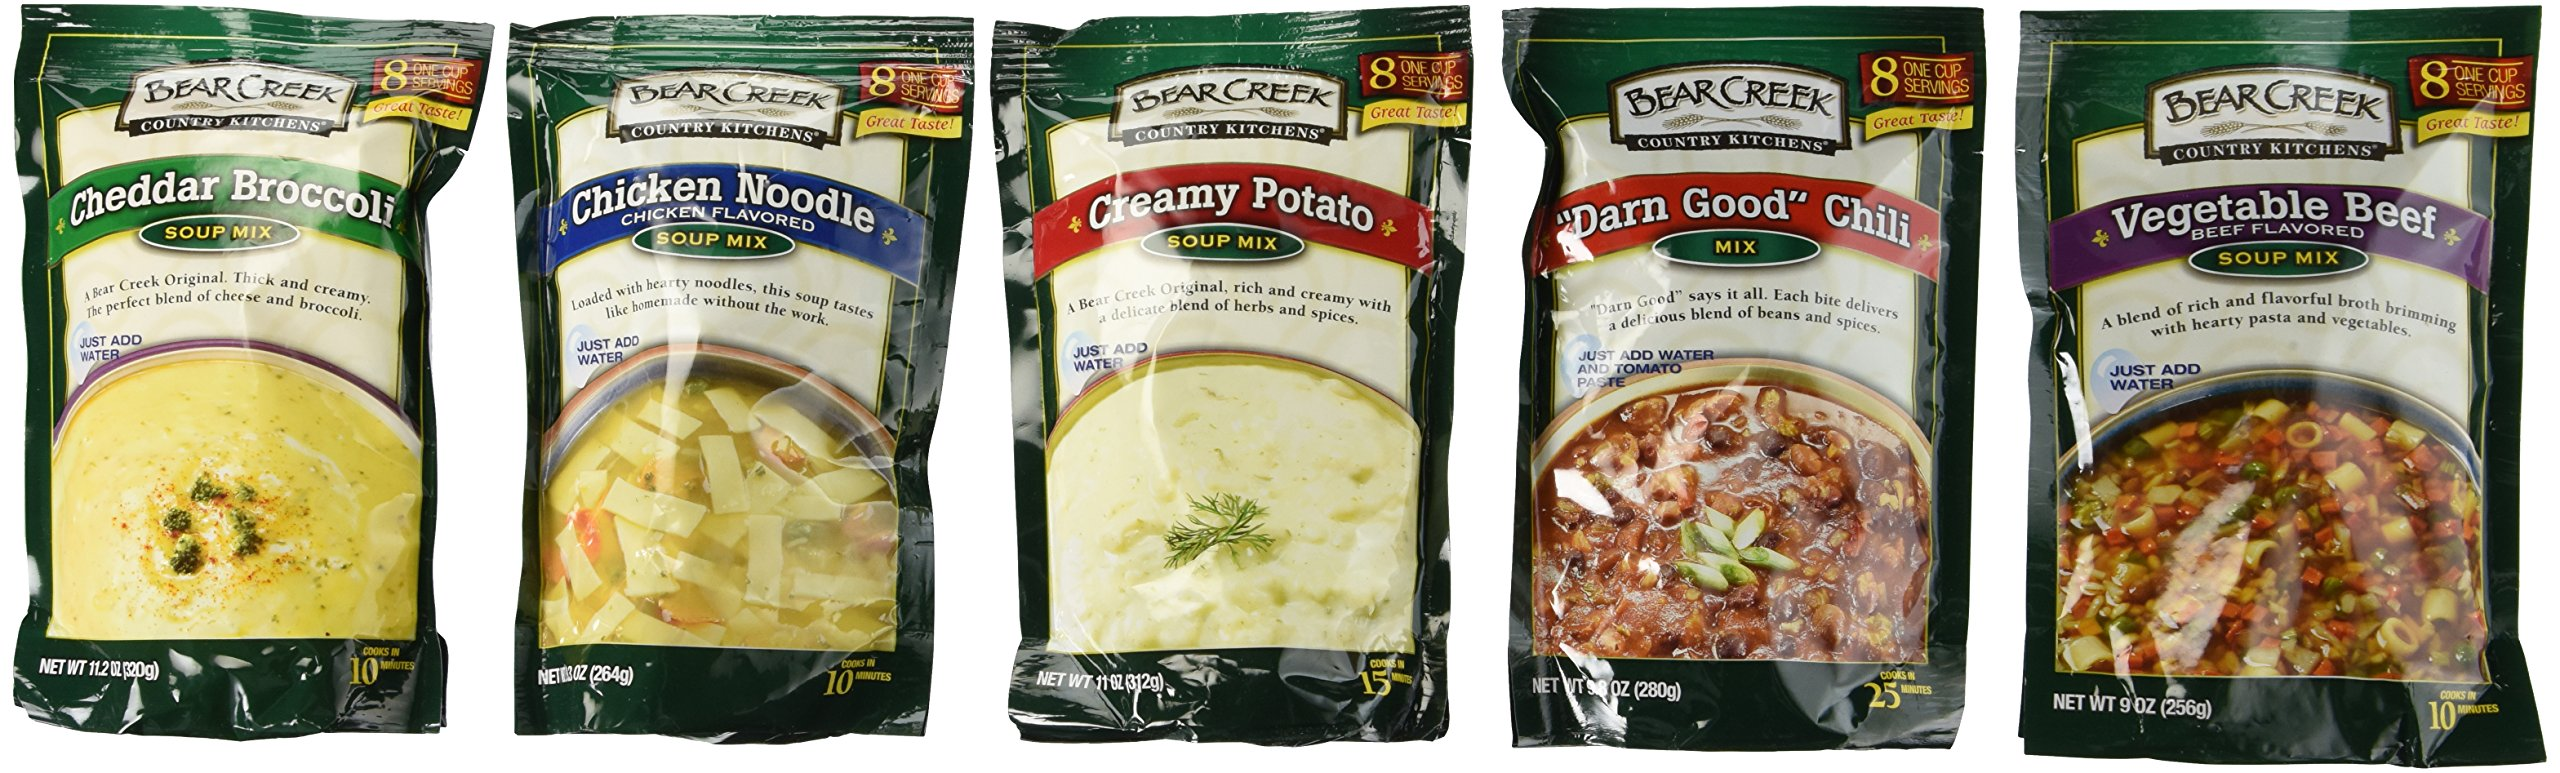 Bear Creek Country Kitchens Soup Mix Variety Pack Buy Online In Moldova At Moldova Desertcart Com Productid 14519756